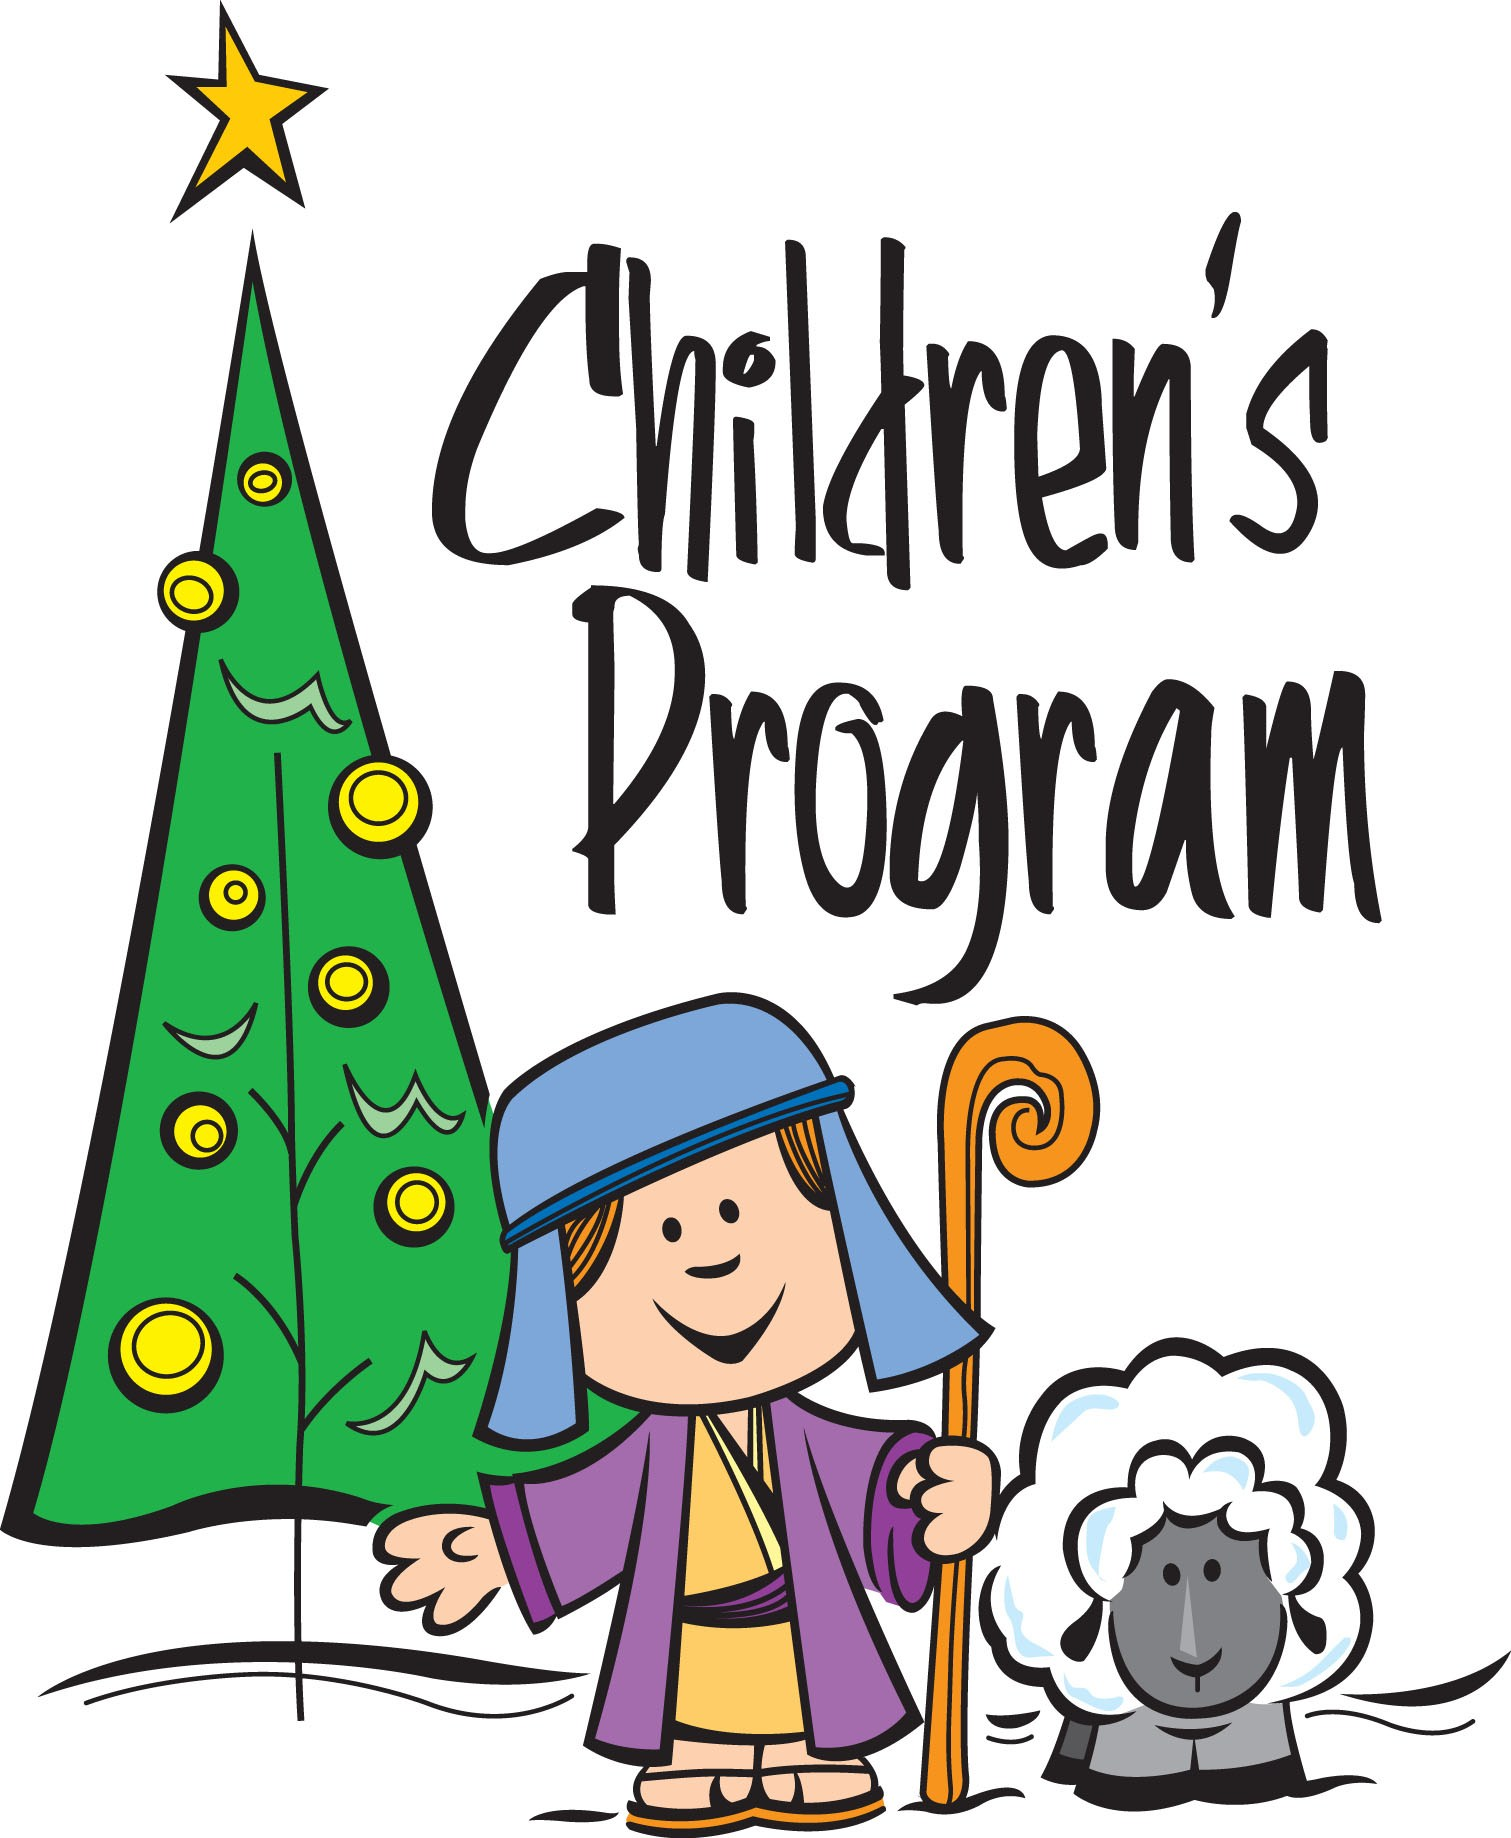 Childrens christmas pageant clipart 8 » Clipart Portal.